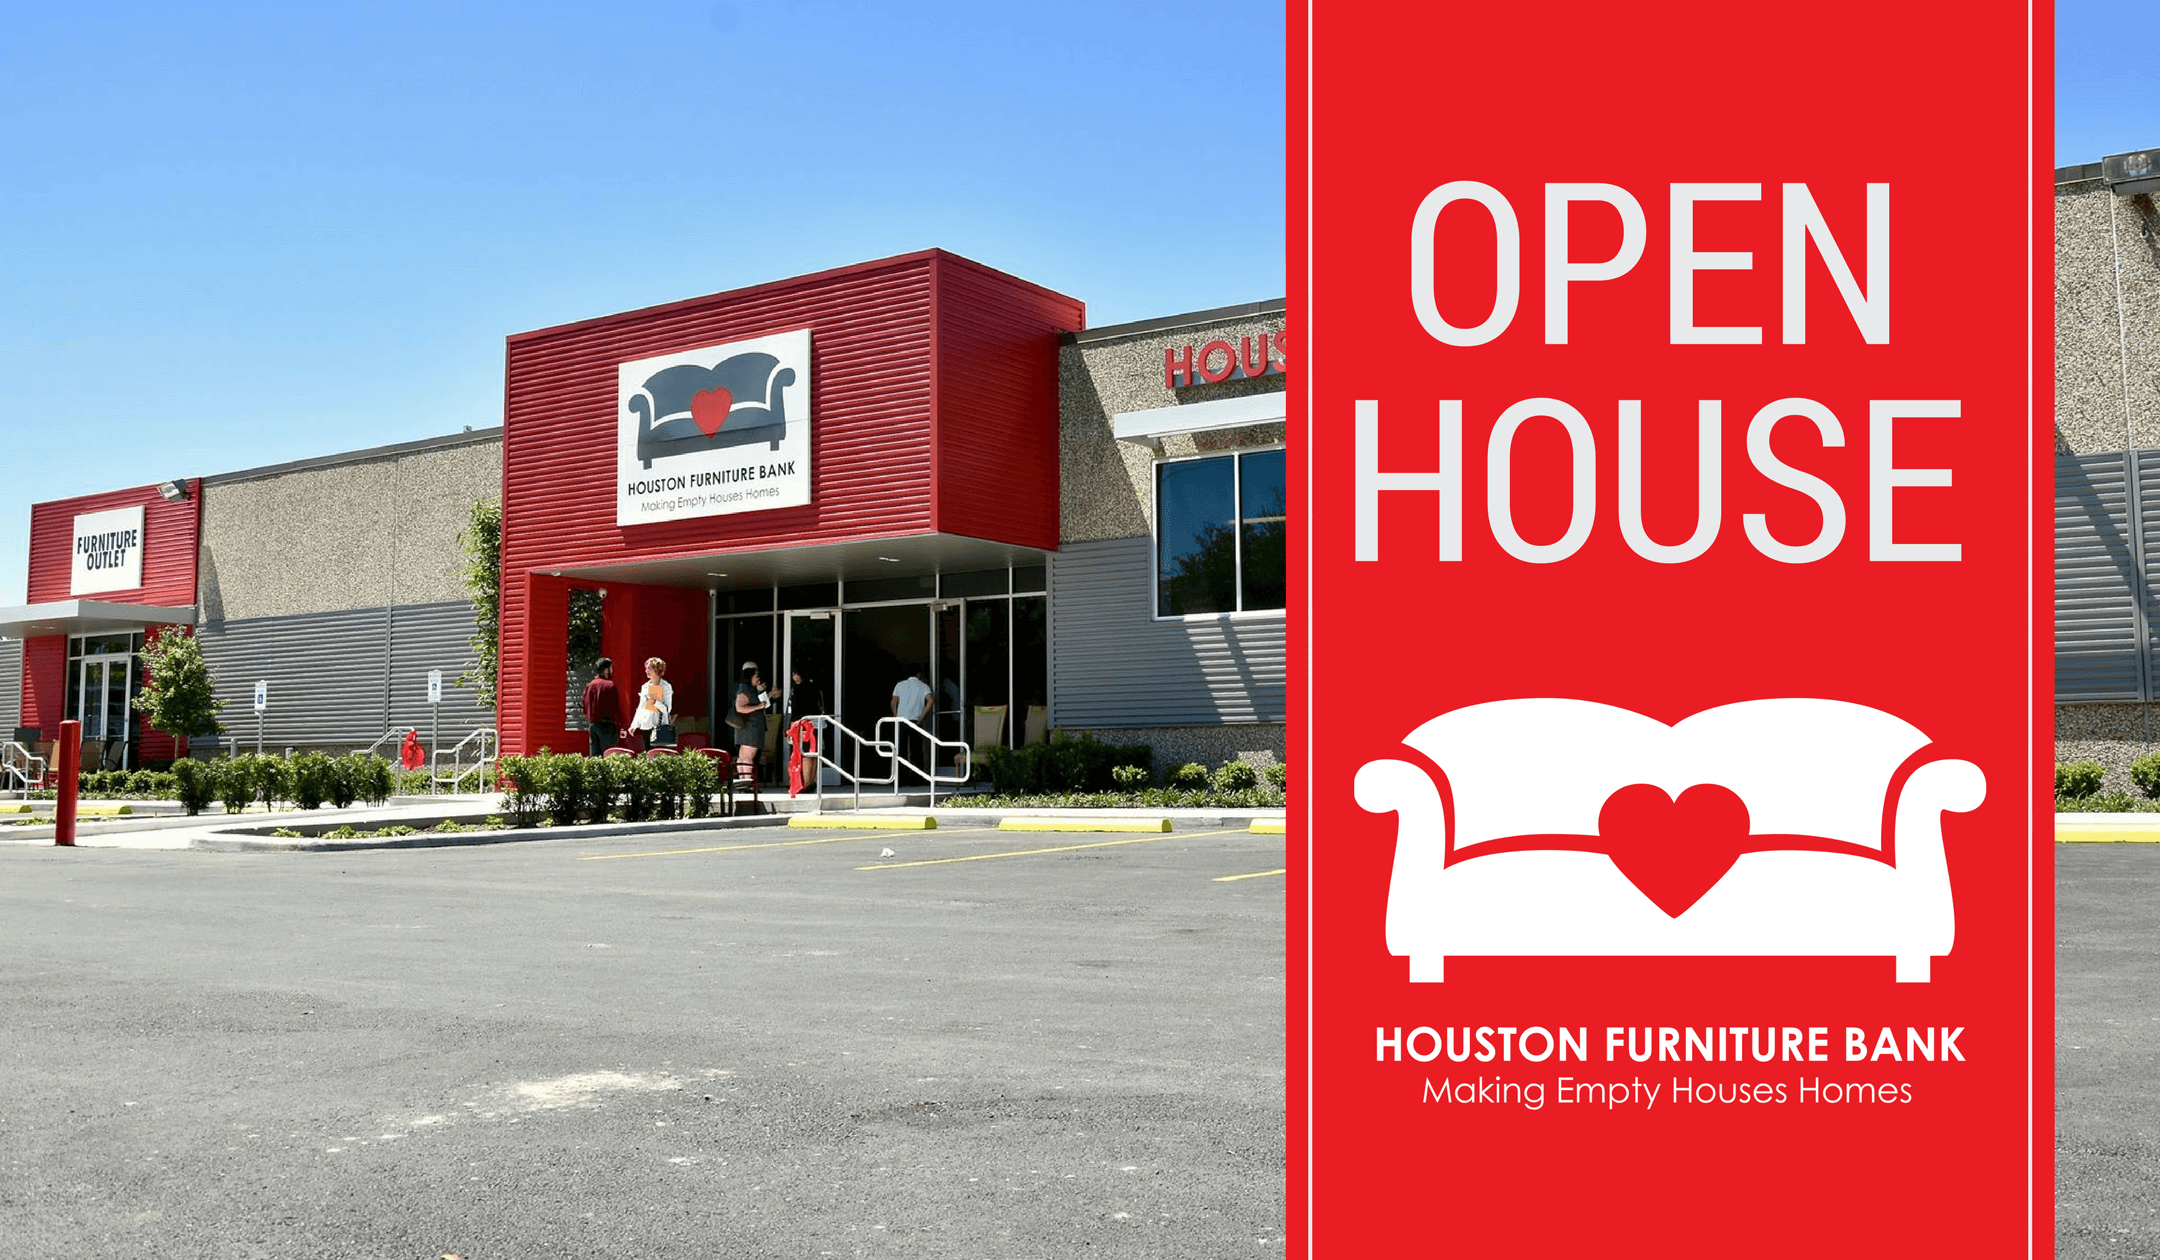 houston furniture bank open house get involved